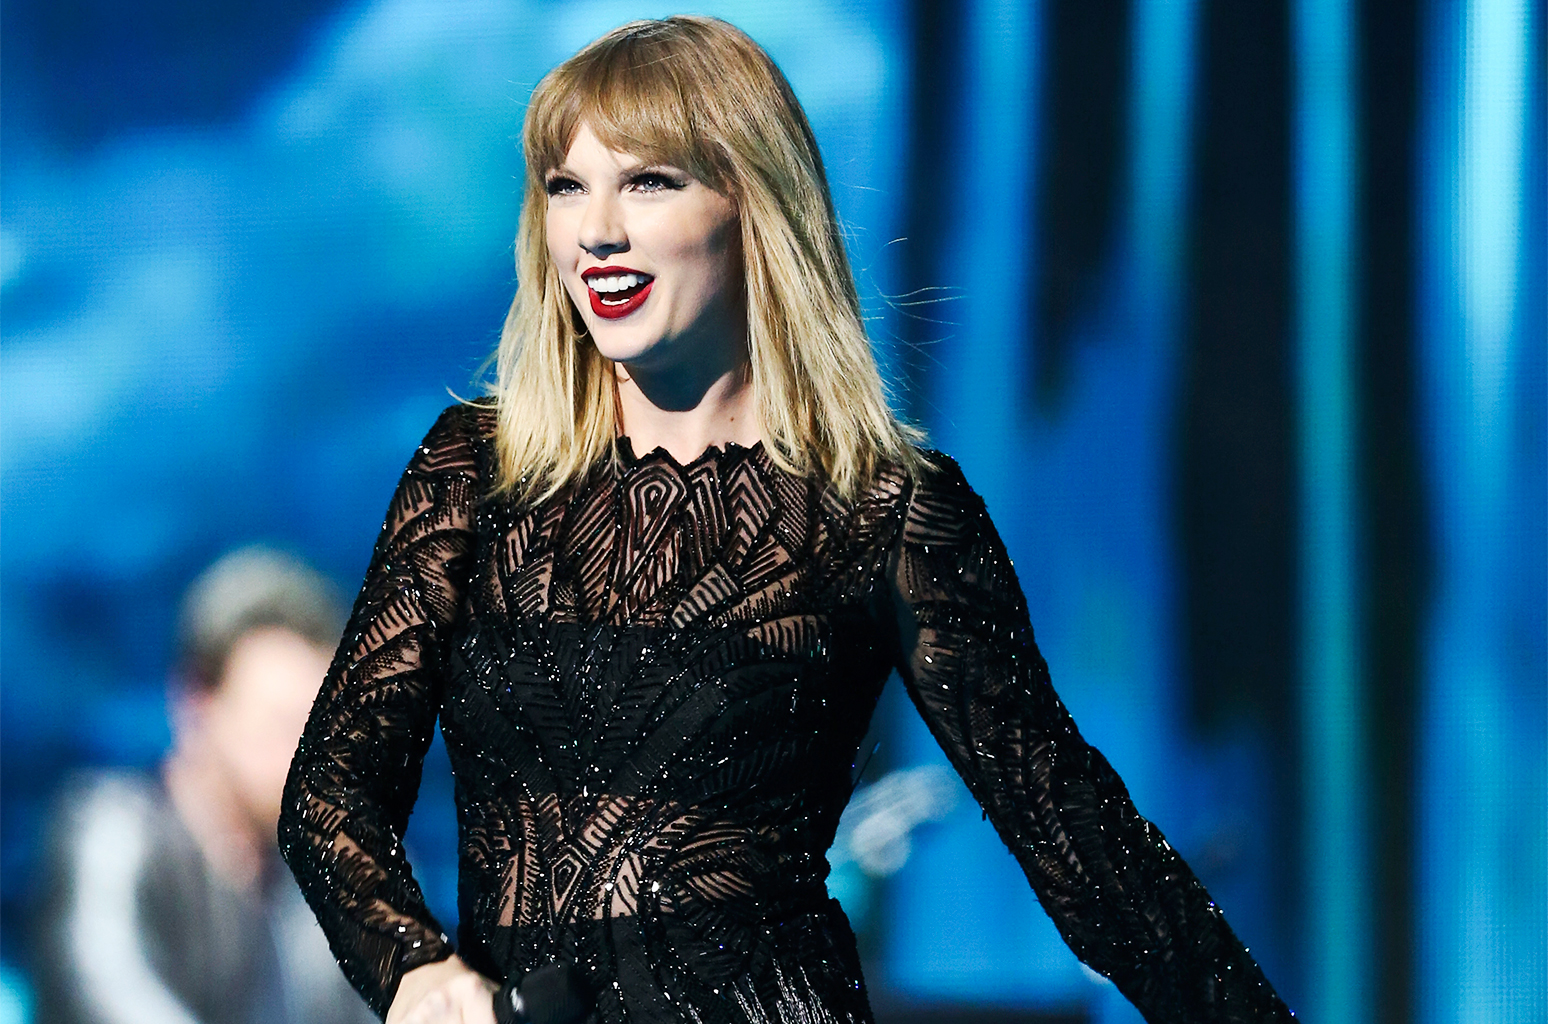 Taylor Swift took a stand with groping case